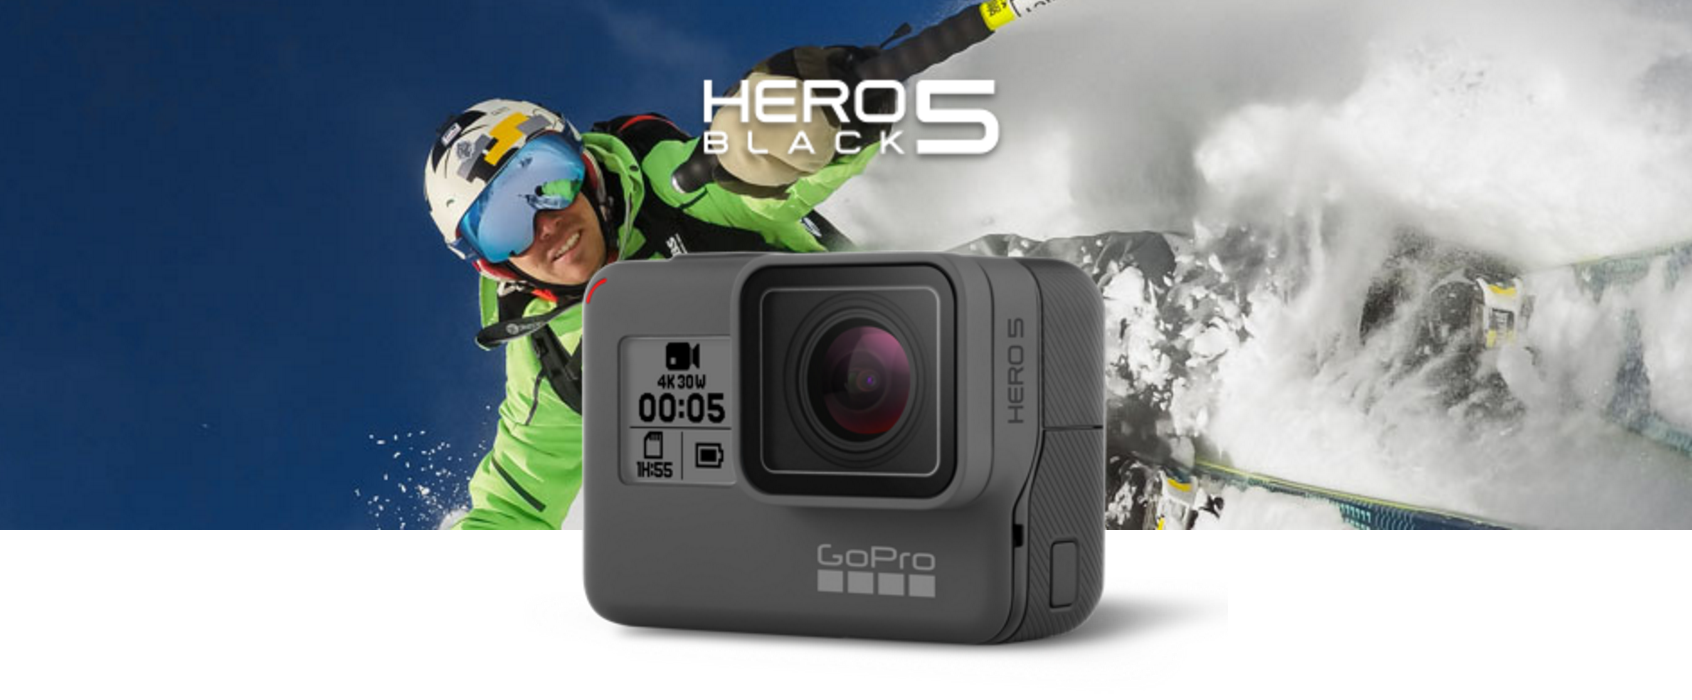 Introducing the new GoPro HERO5